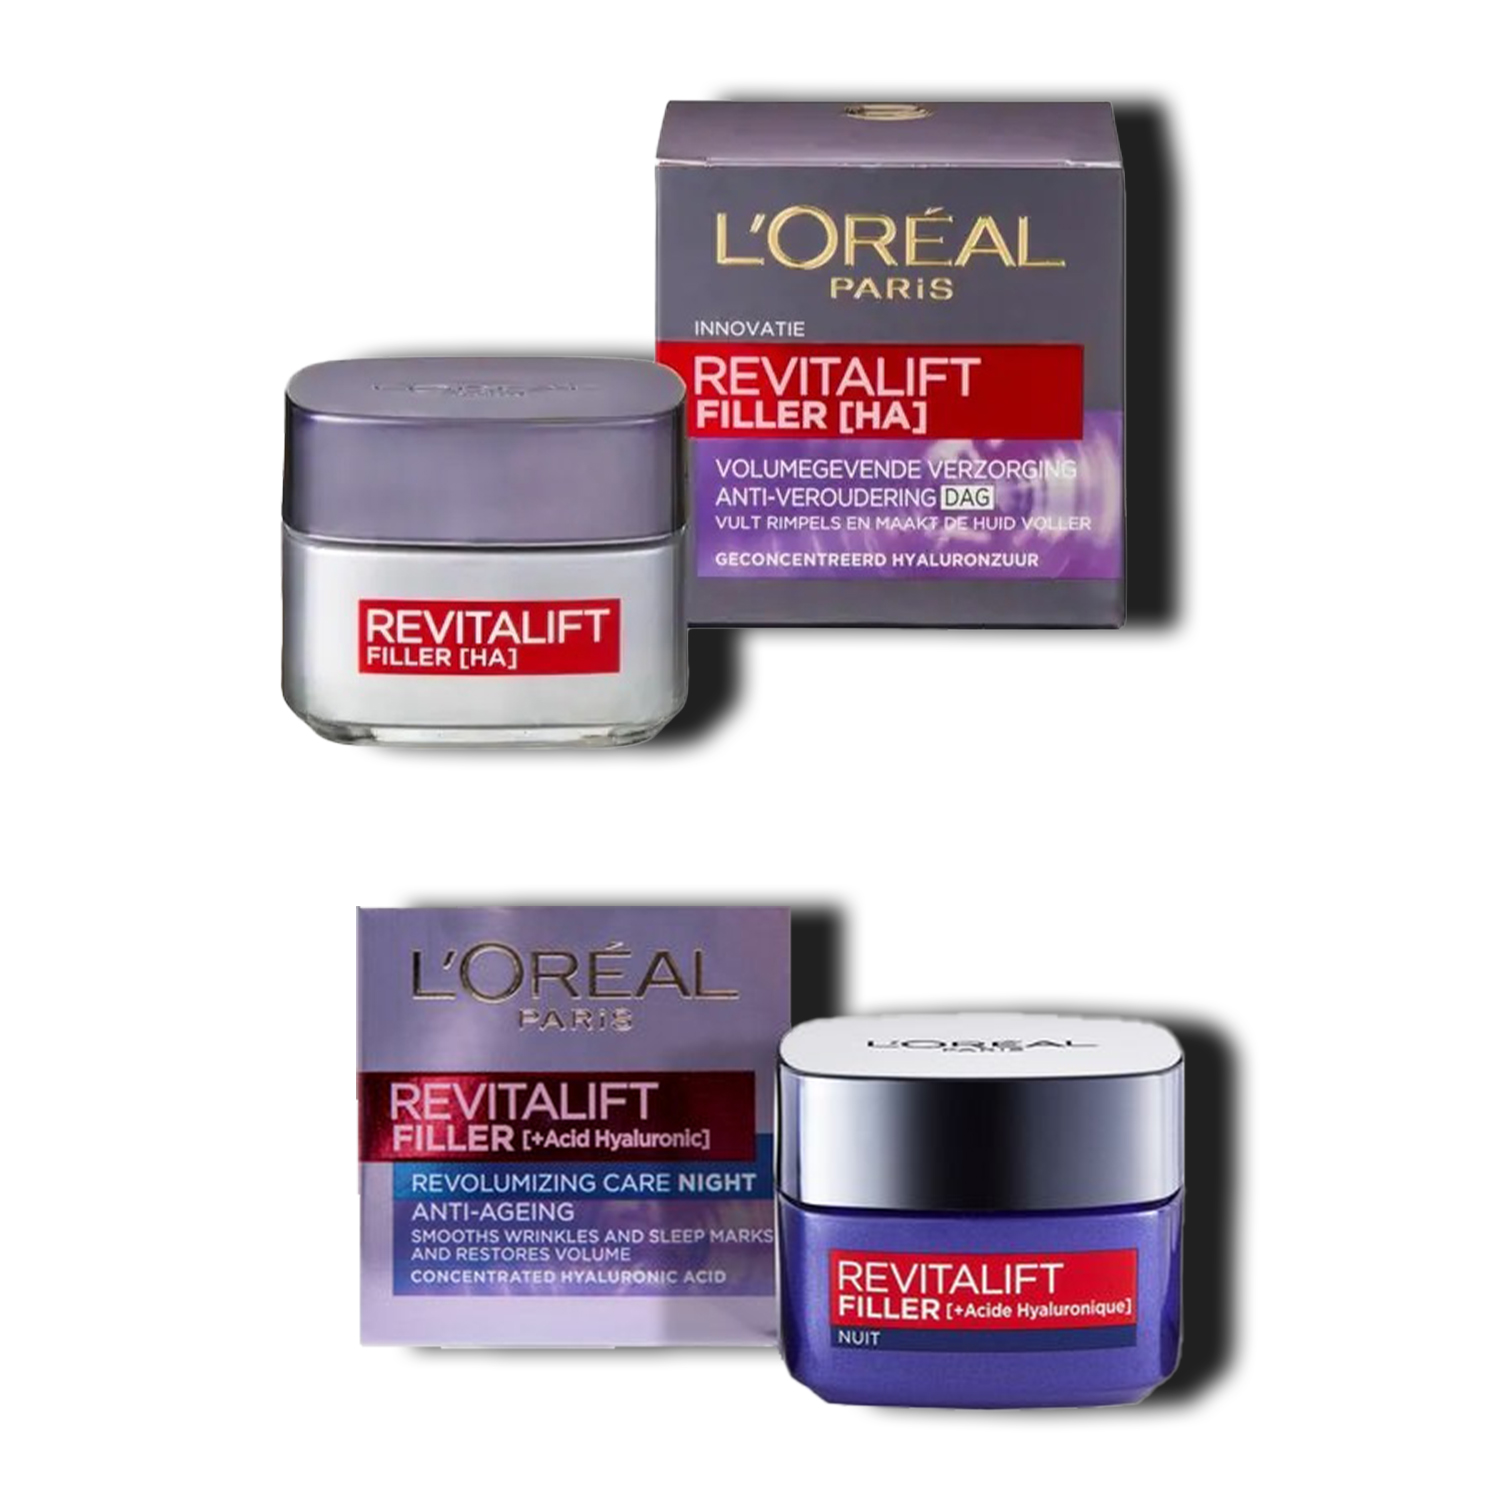 L'Oreal Paris Revitalift Filler Renew Day Cream & Night Cream Combo